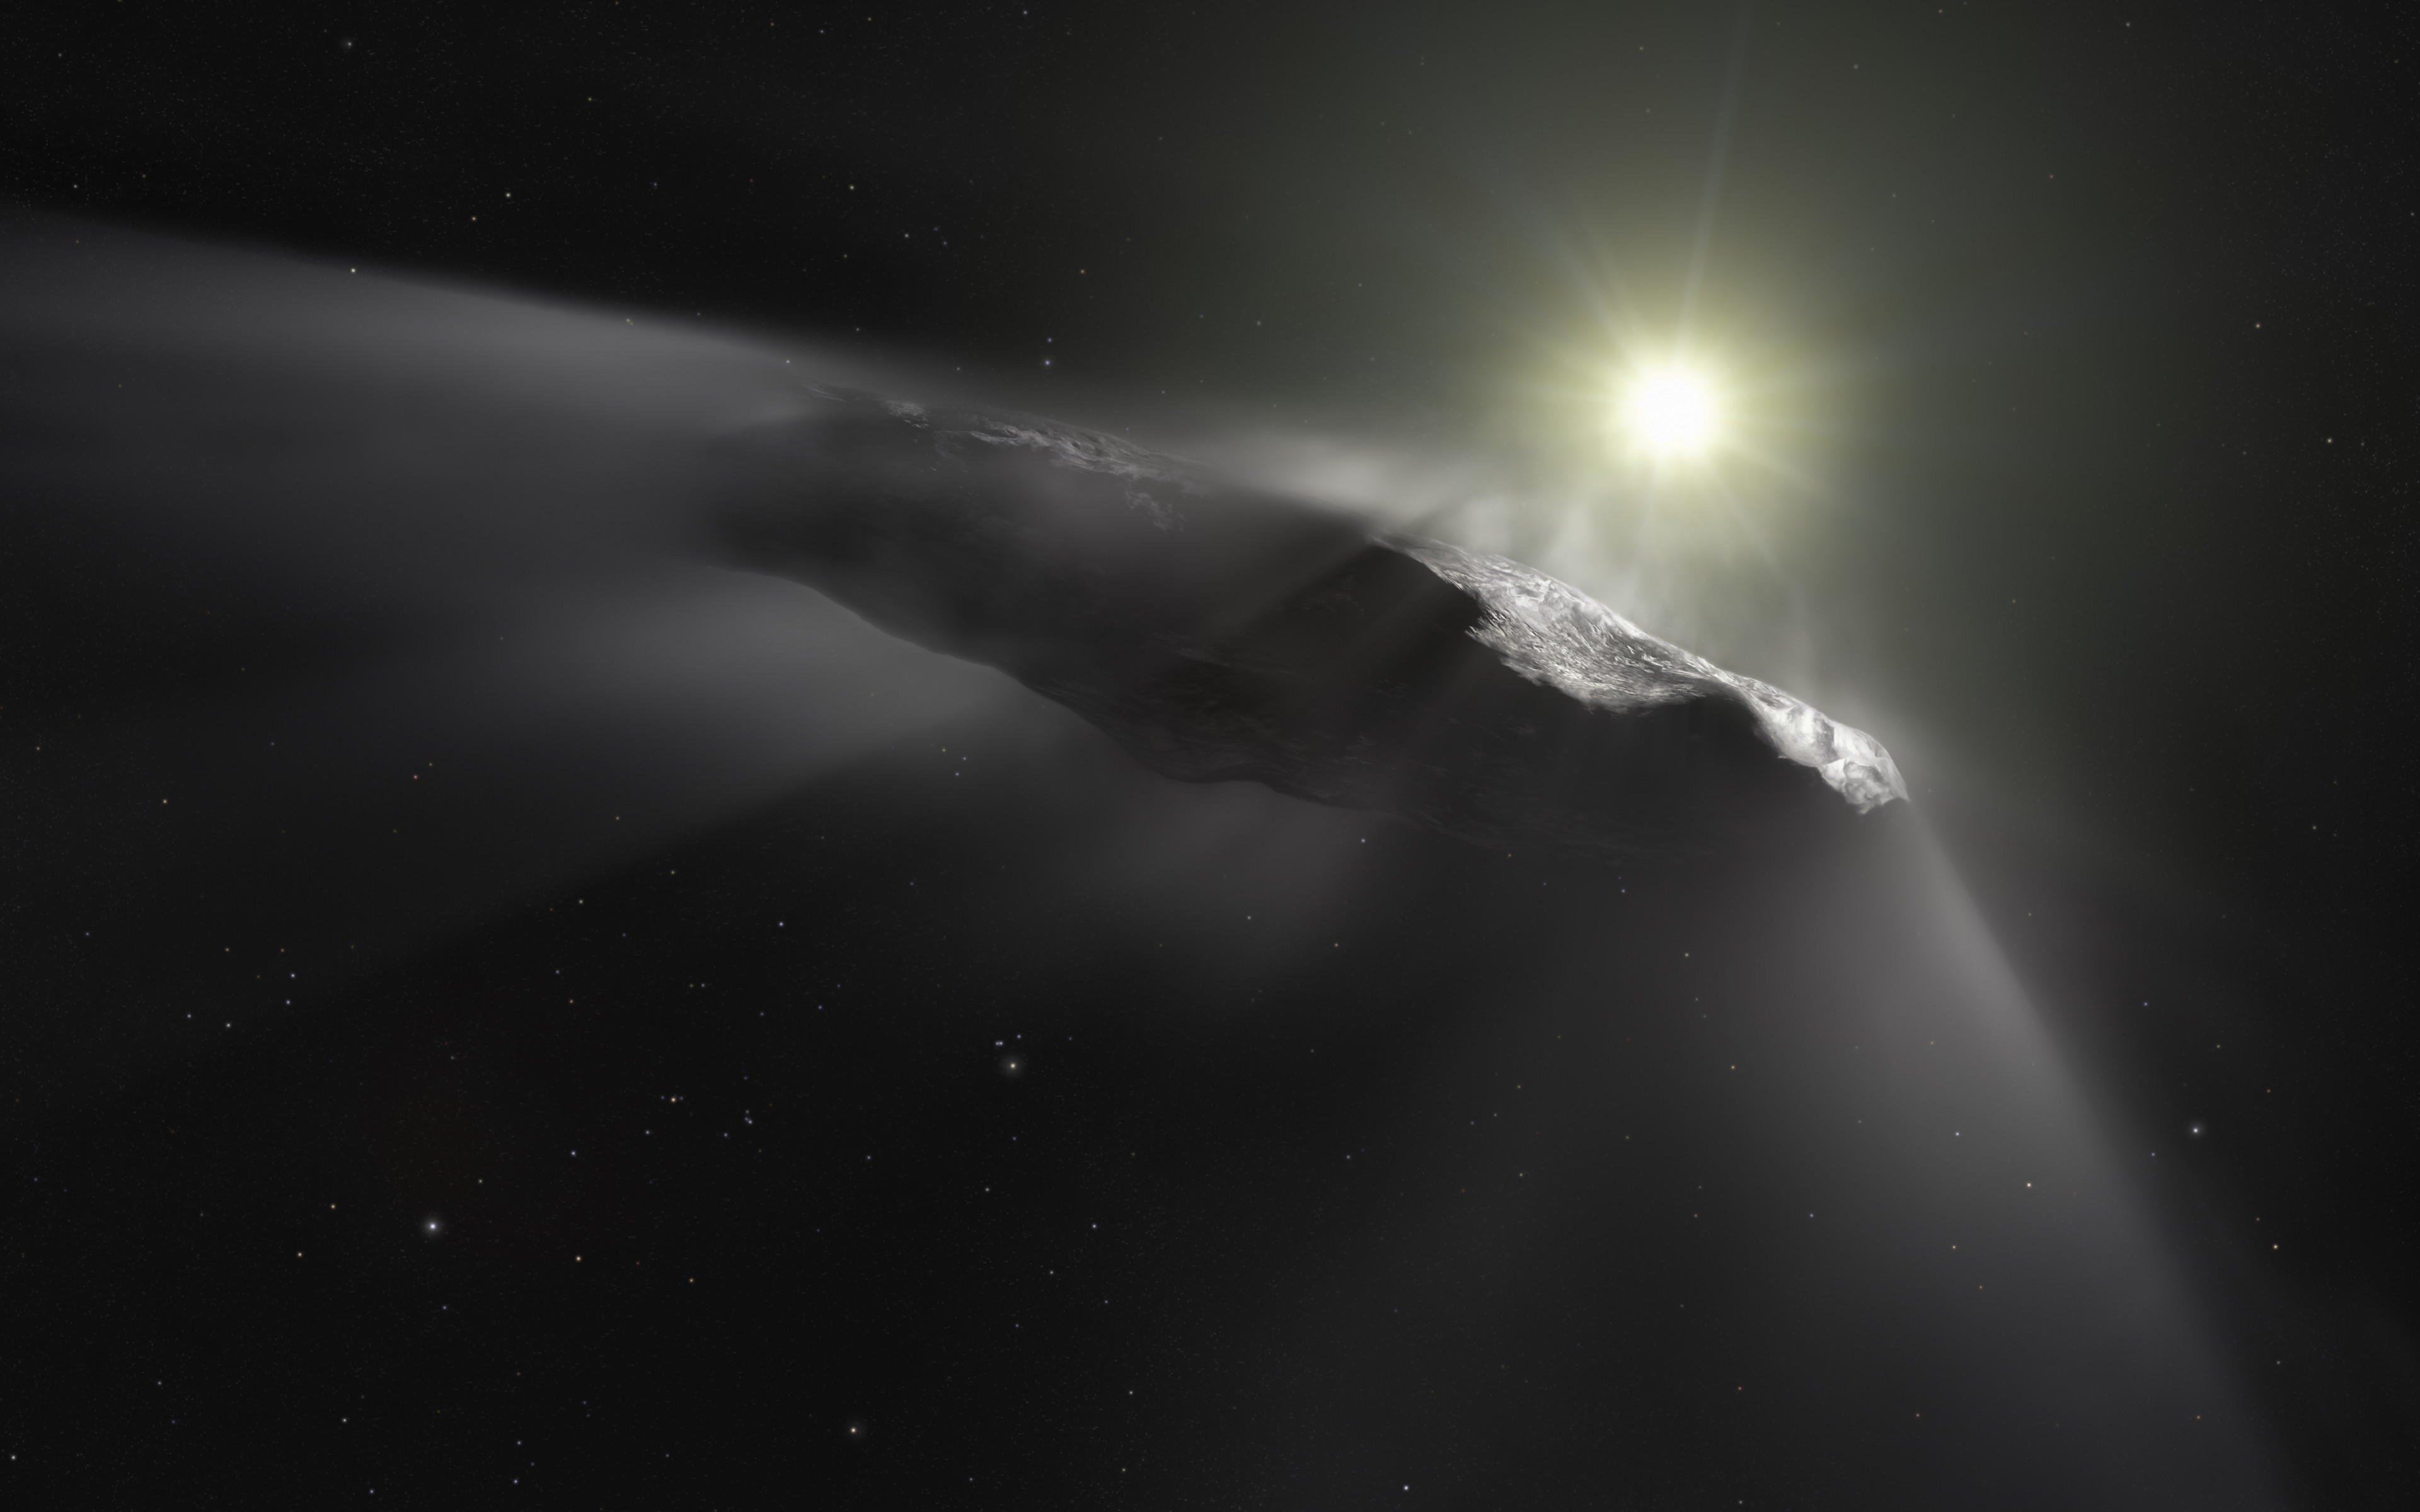 Oumuamua asteroid wallpaper 3840x2400